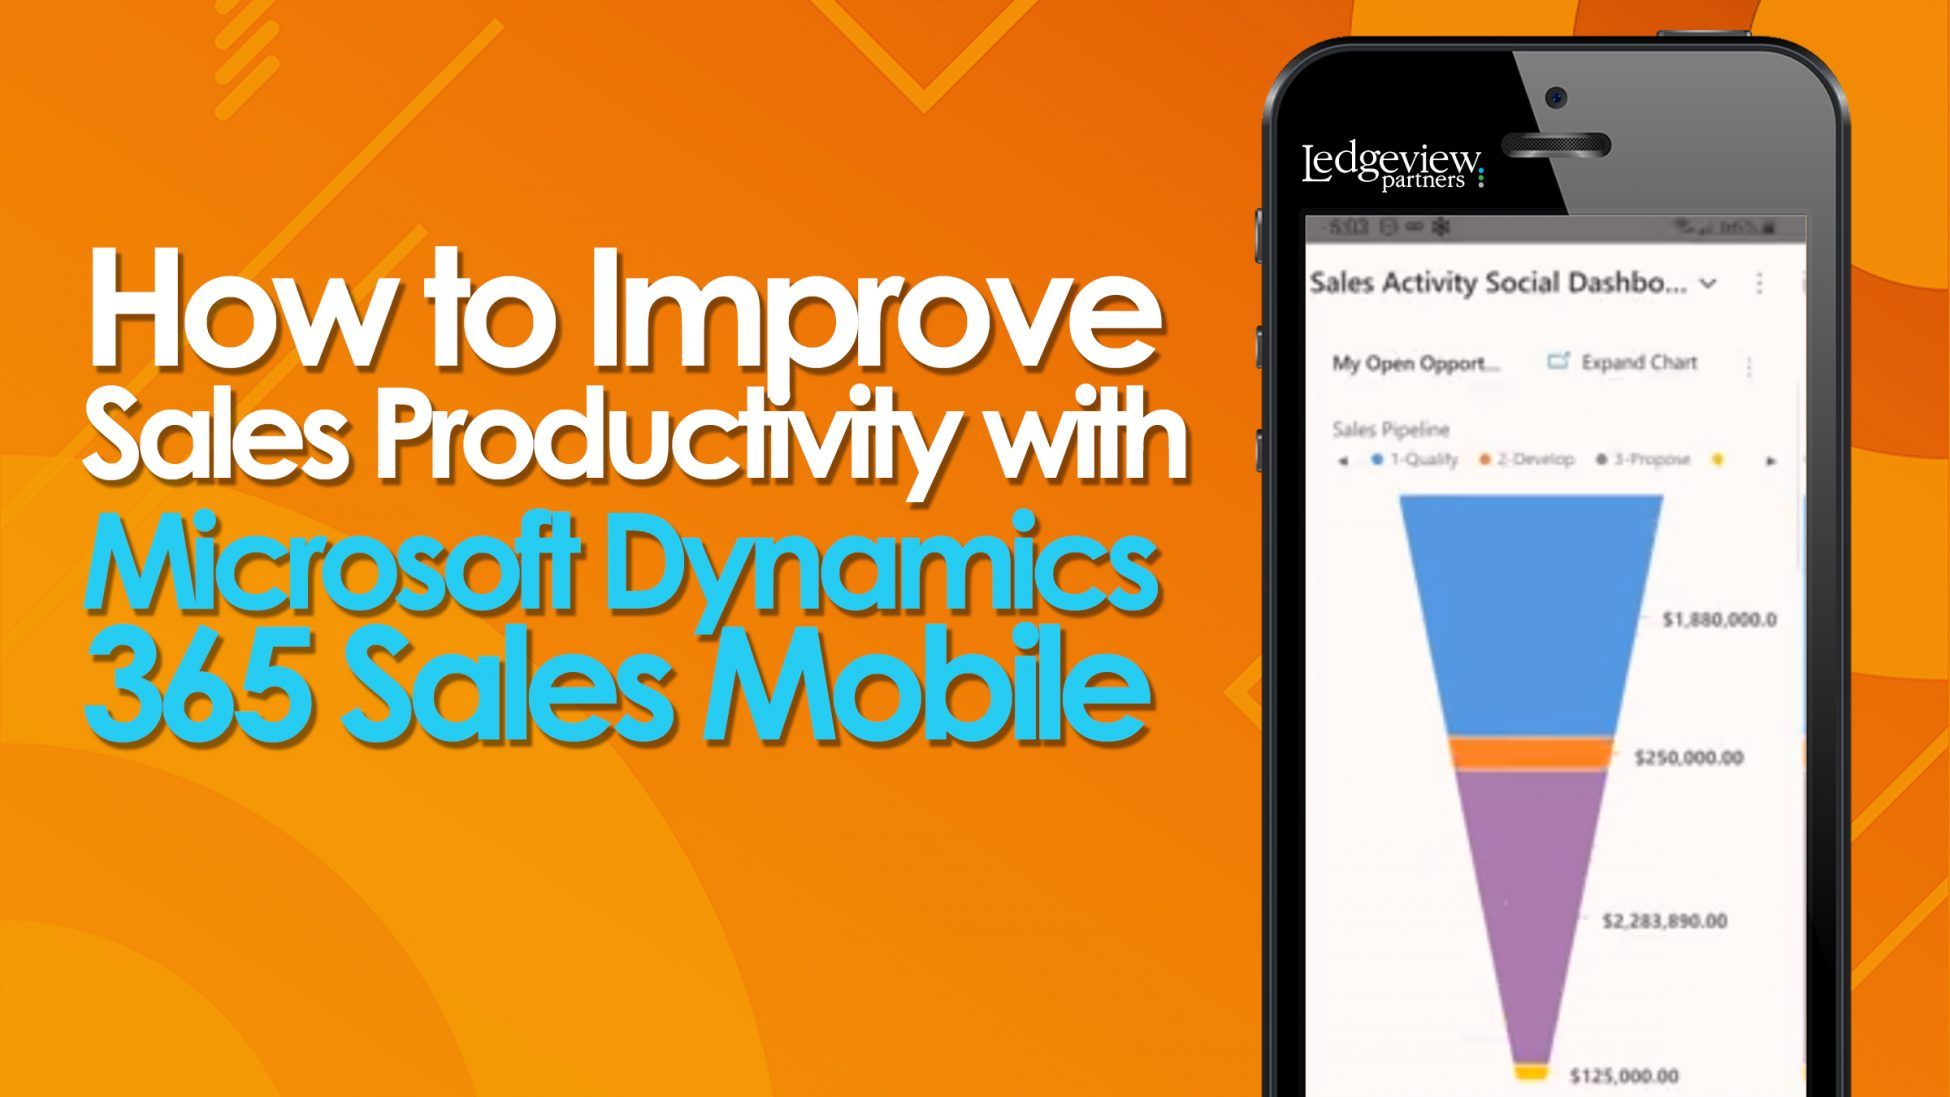 How to Improve Sales Productivity with Microsoft Dynamics 365 Sales Mobile